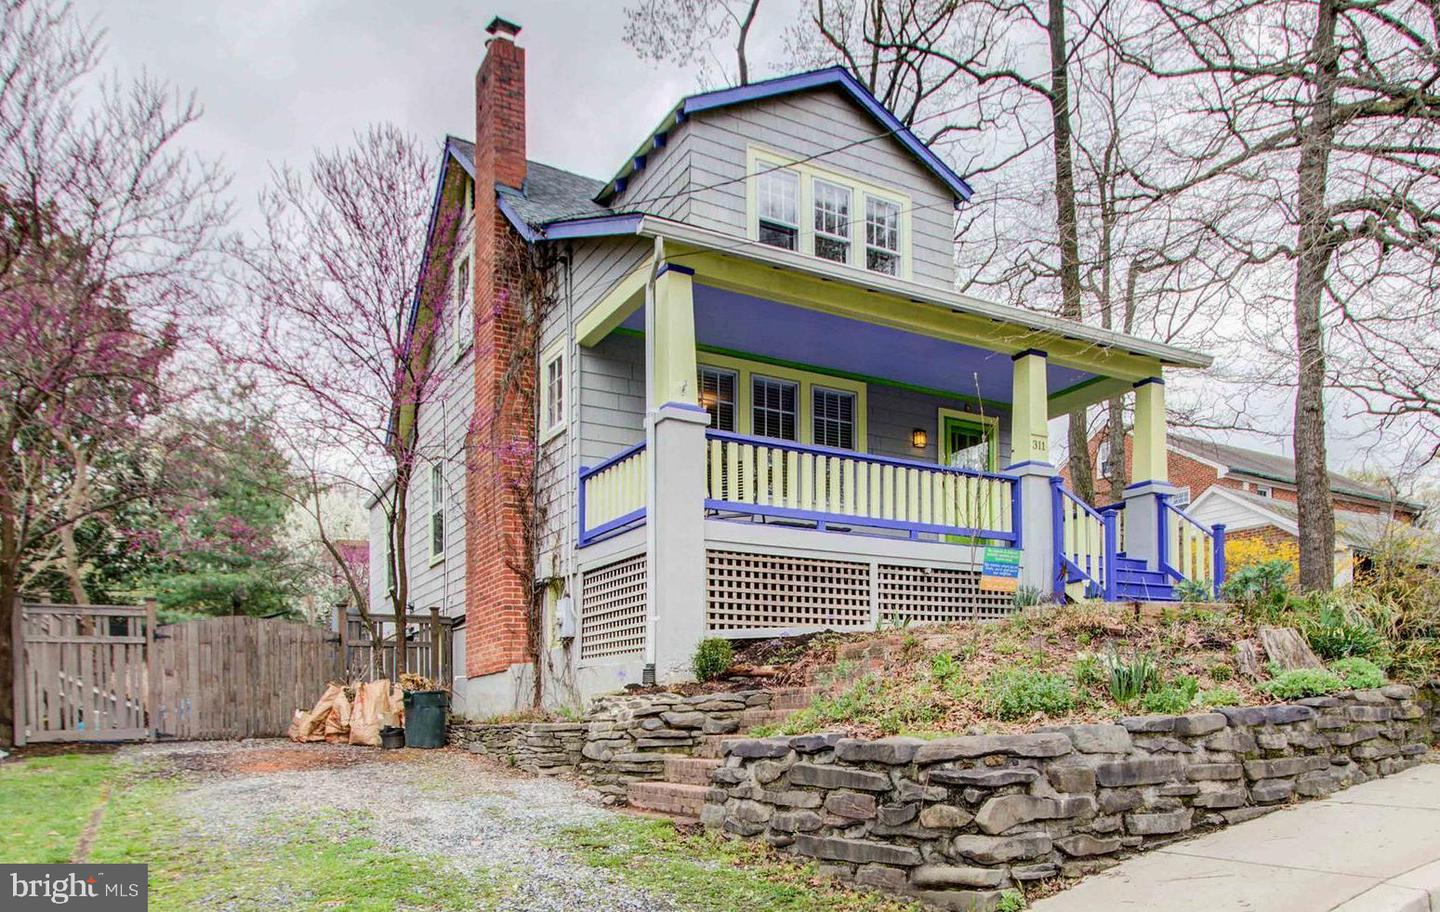 311 LINCOLN AVE, TAKOMA PARK, Maryland 20912, 3 Bedrooms Bedrooms, ,3 BathroomsBathrooms,Single Family,For Sale,311 LINCOLN AVE,MDMC747294